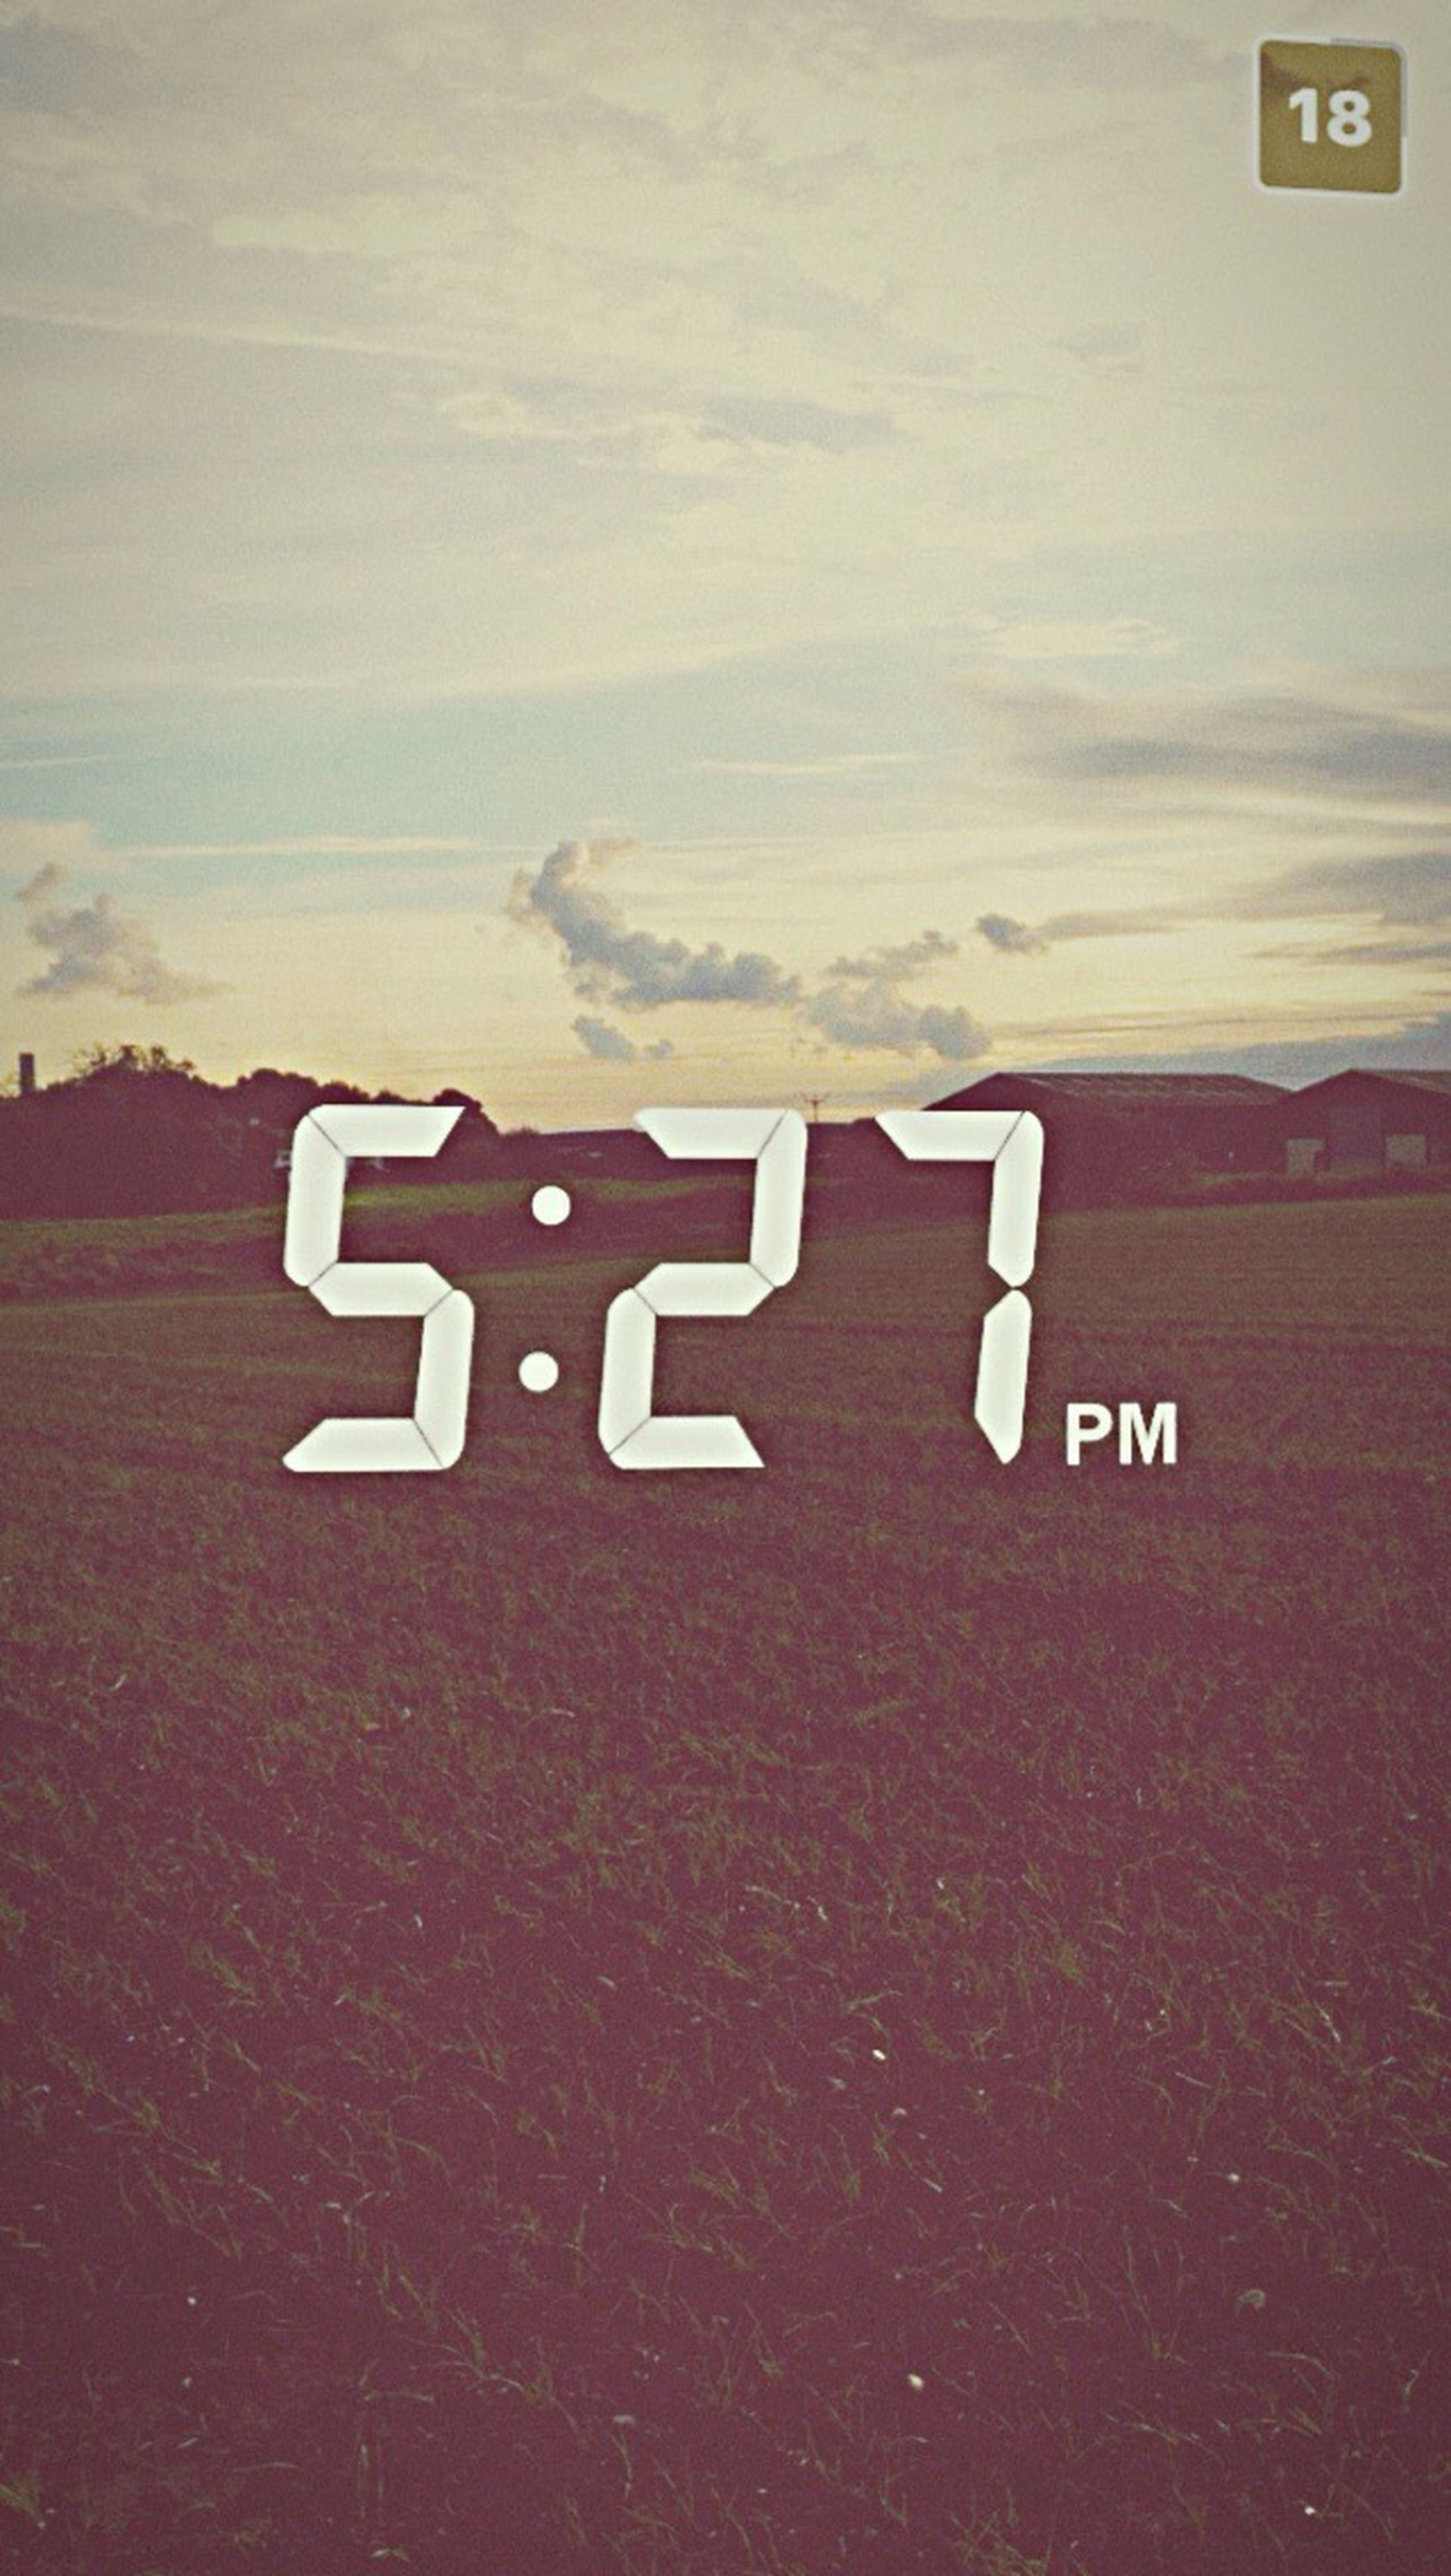 communication, text, western script, capital letter, message, sky, outdoors, no people, symbol